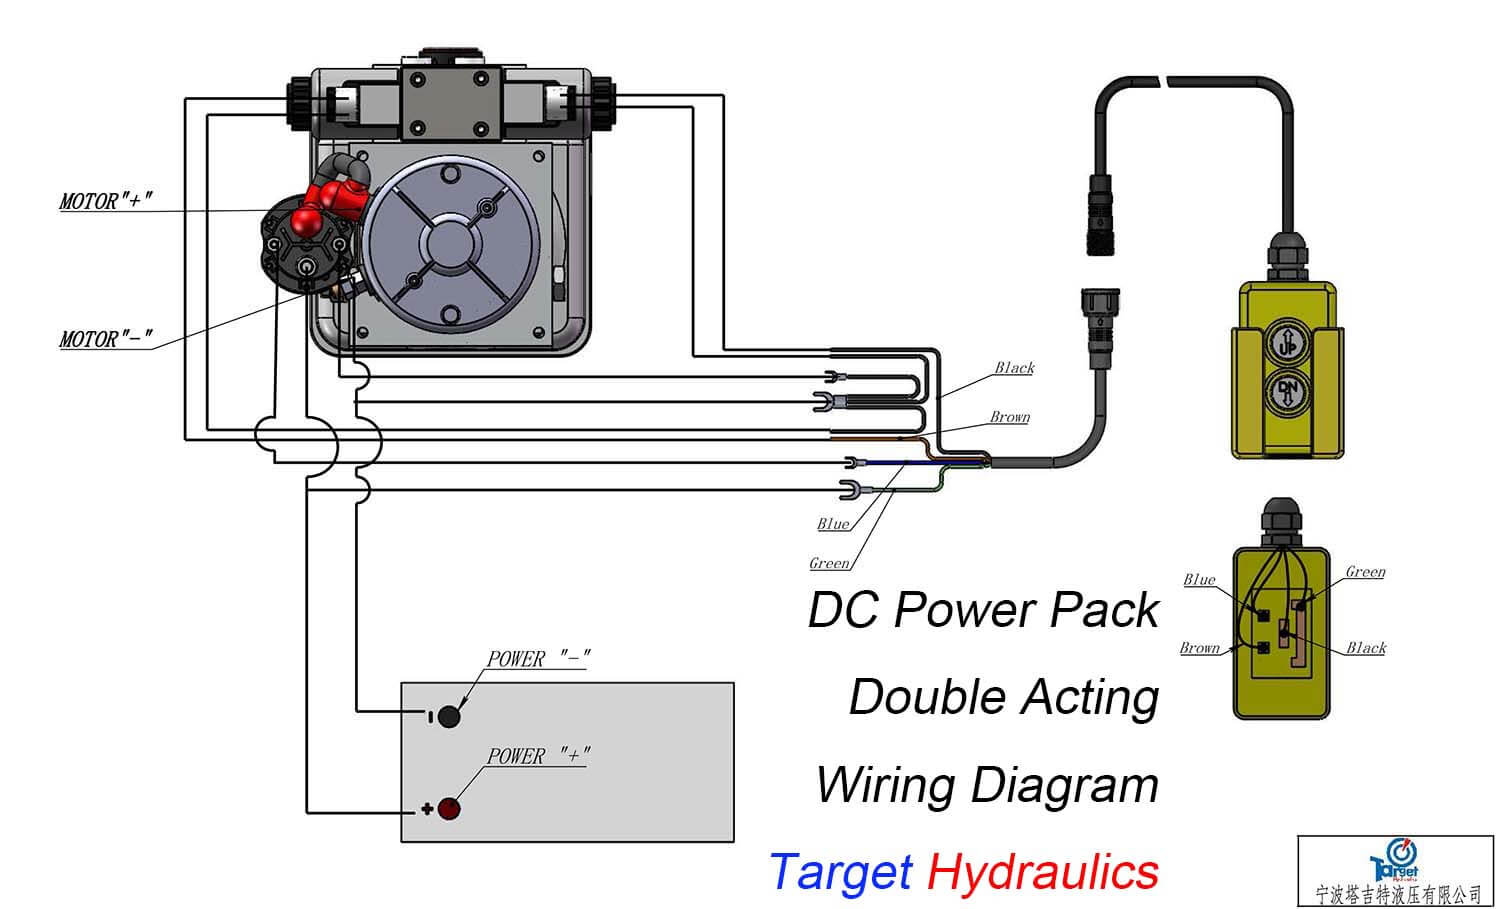 How to Wire_DC Motor Double Acting Power Pack how to wire hydraulic power pack,power unit diagram design dump trailer hydraulic pump wiring diagram at honlapkeszites.co